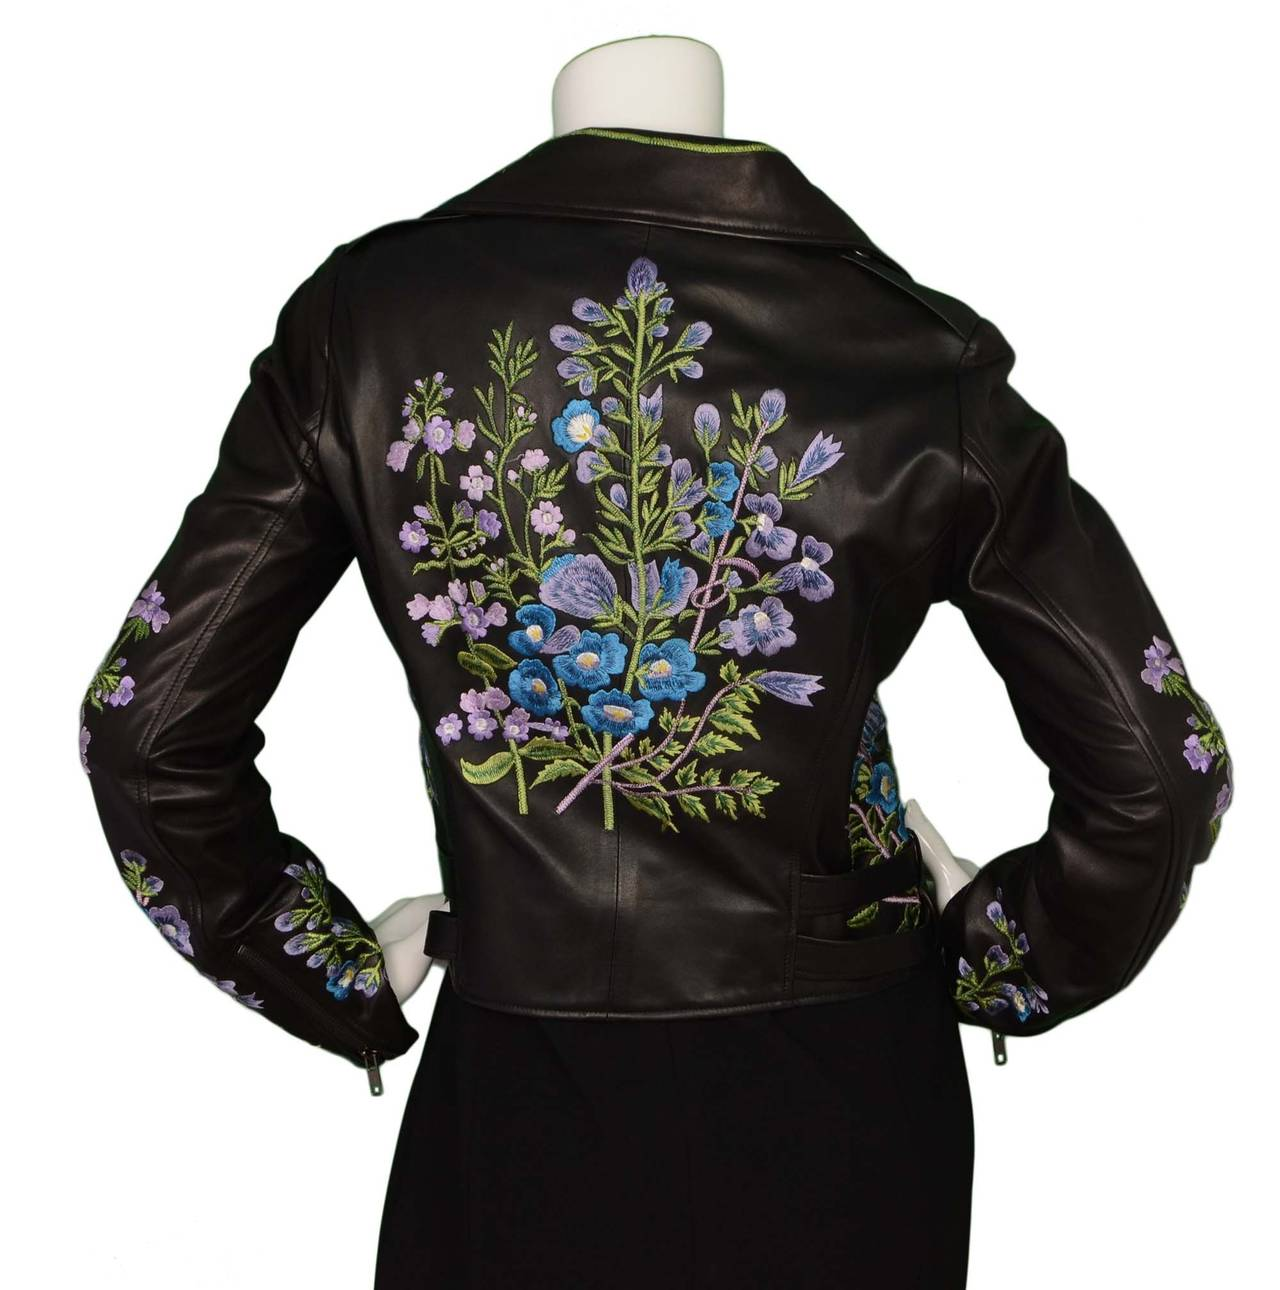 CHRISTOPHER KANE Floral Embroidered Black Leather Jacket Sz 10 For Sale At 1stdibs